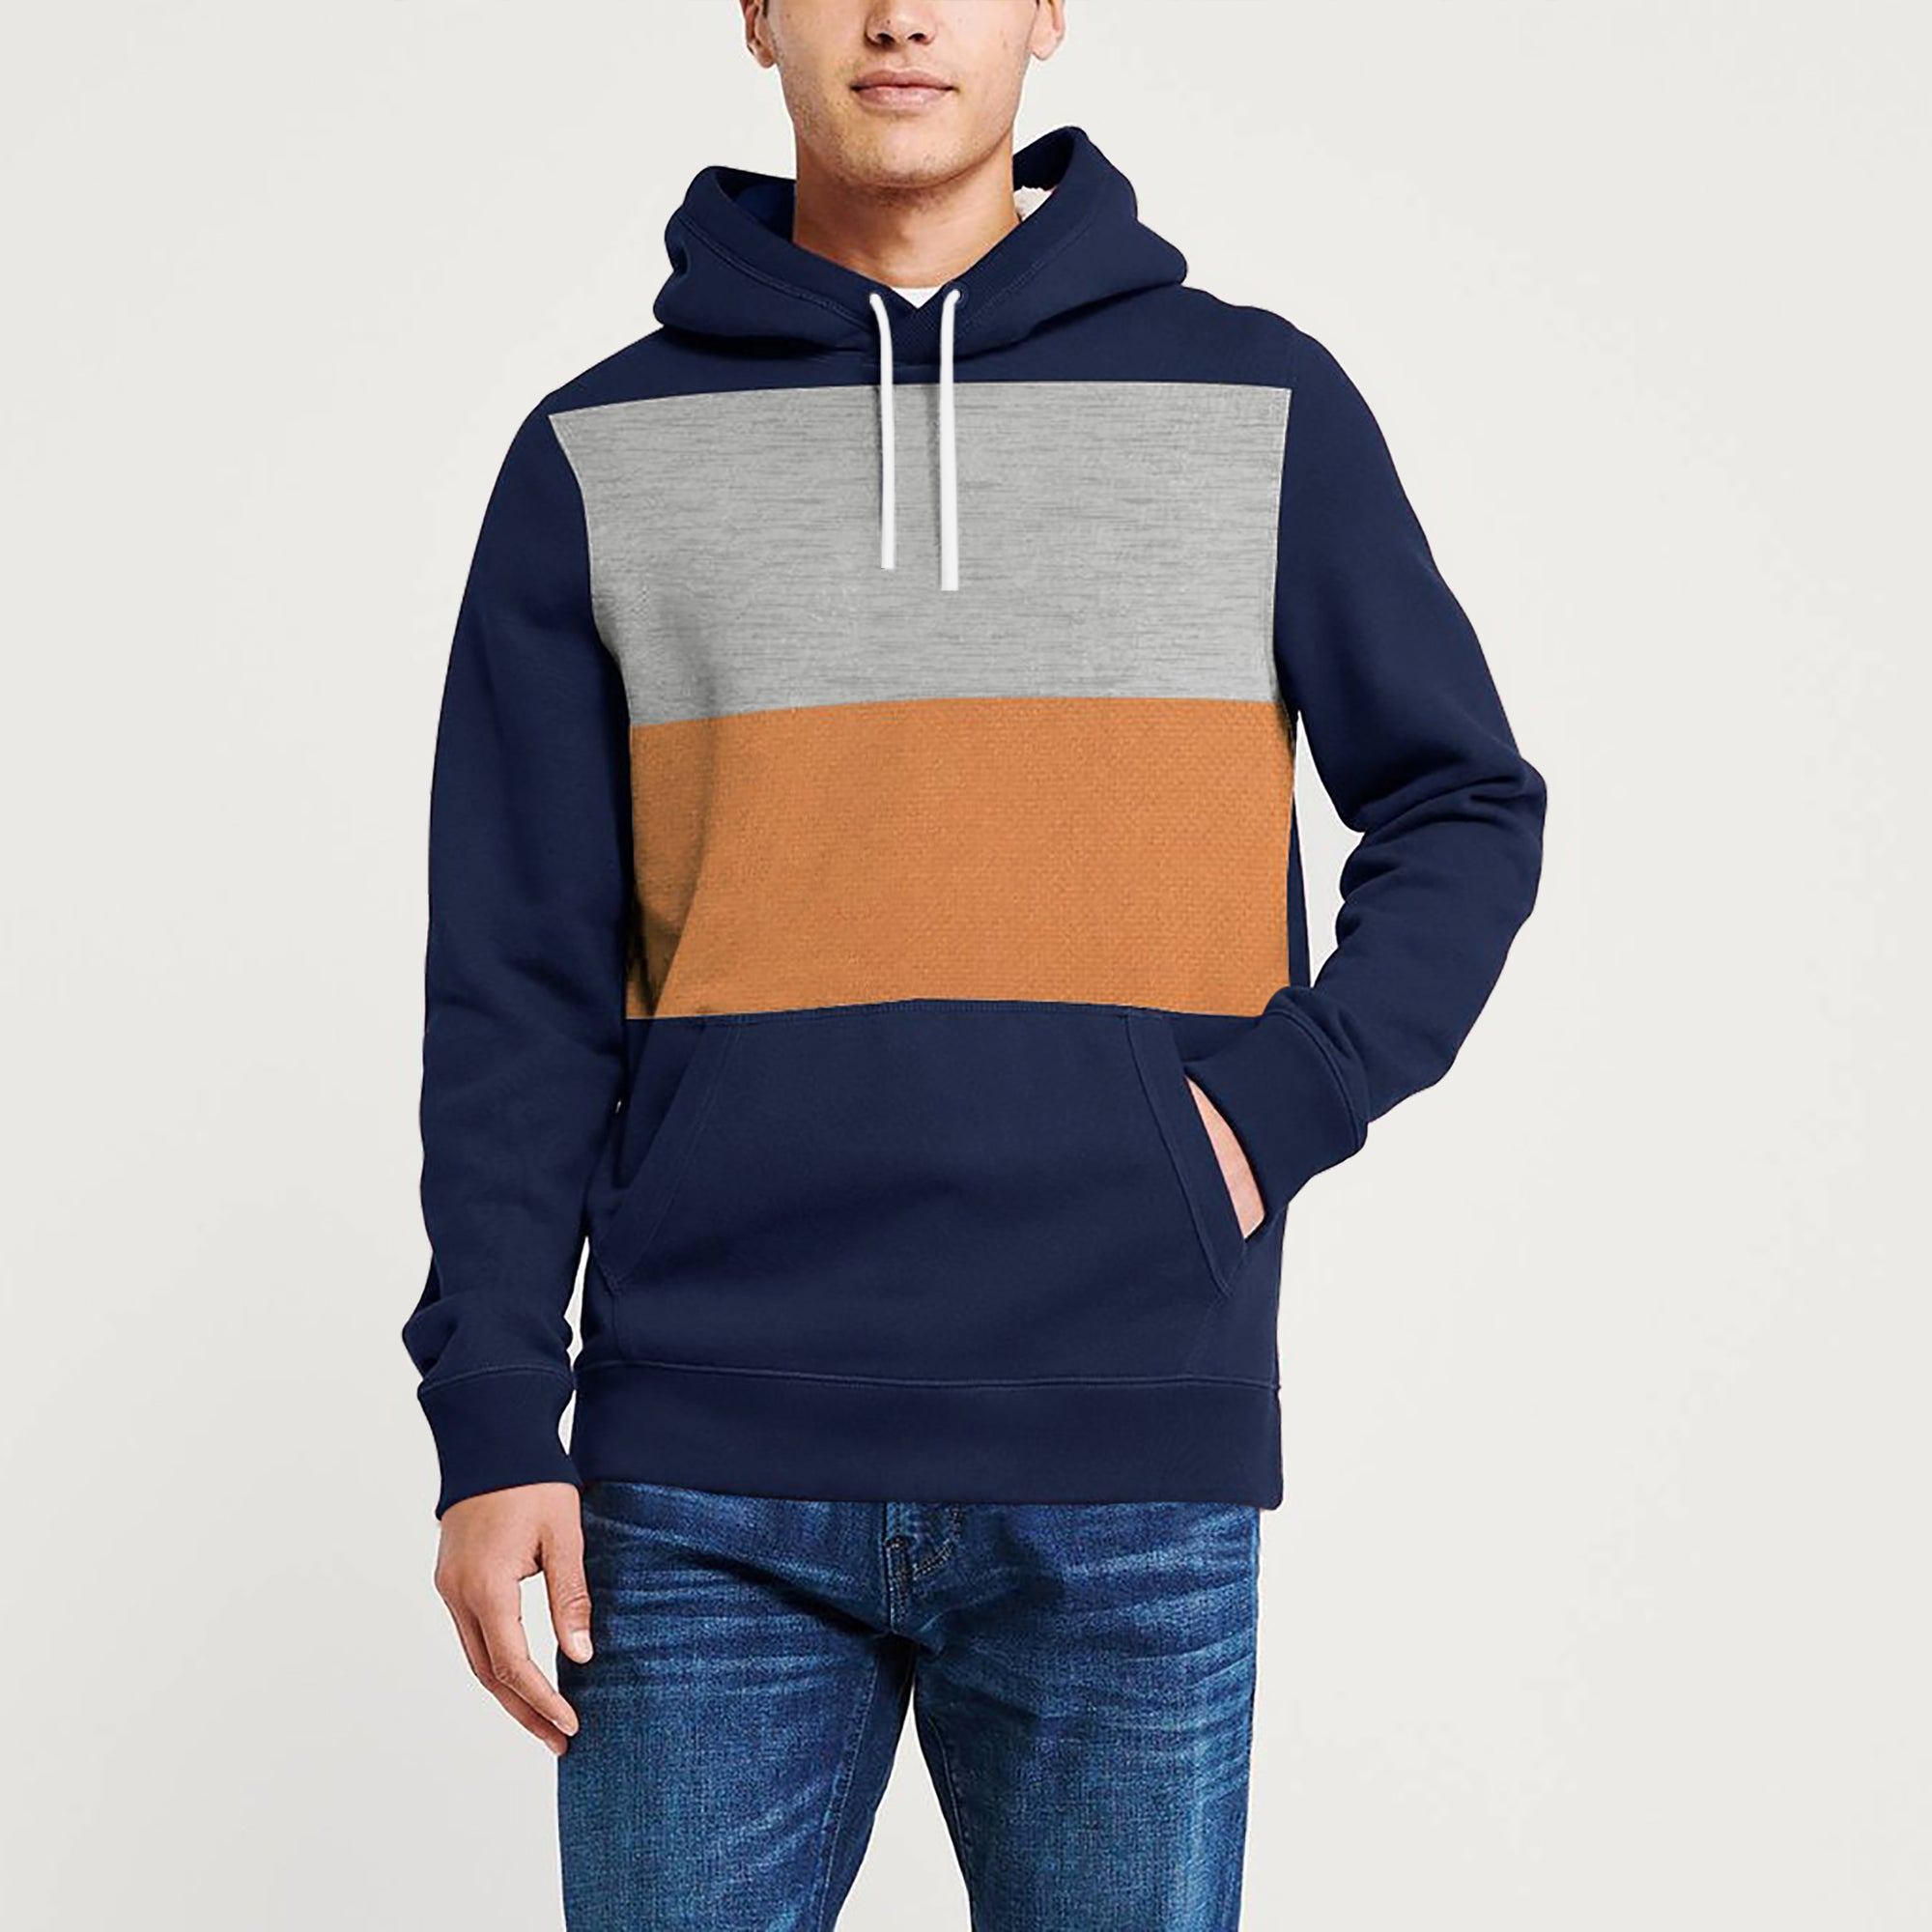 NK Fleece Pullover Hoodie For Men-Navy With Panels-SP1610